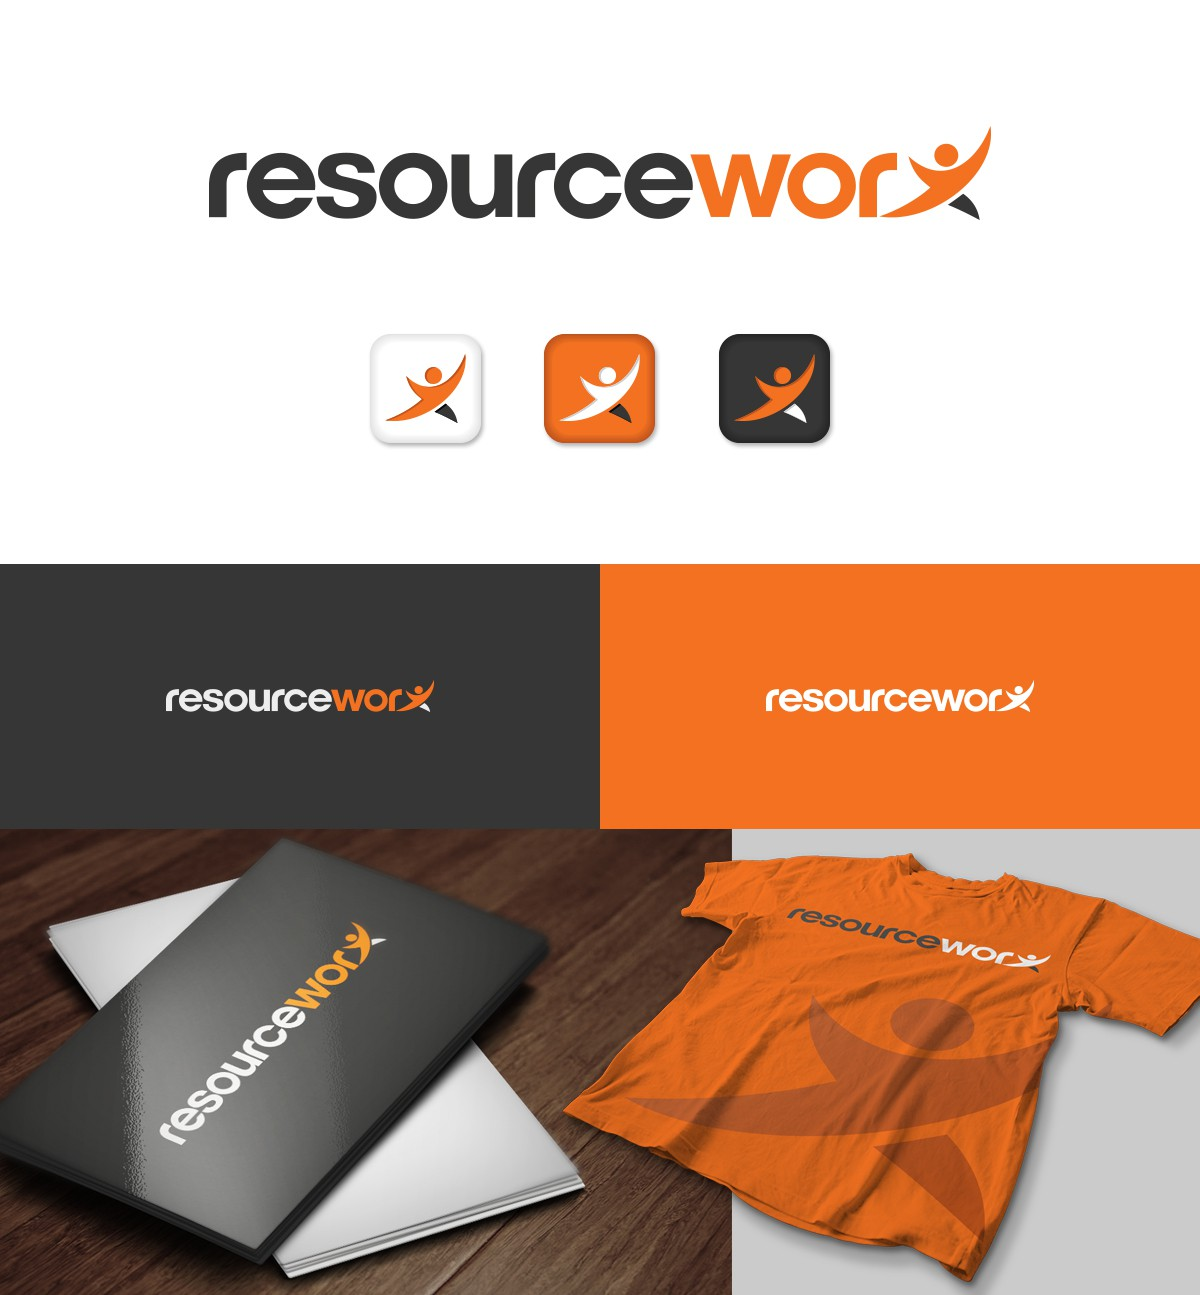 resourceworx needs a new logo